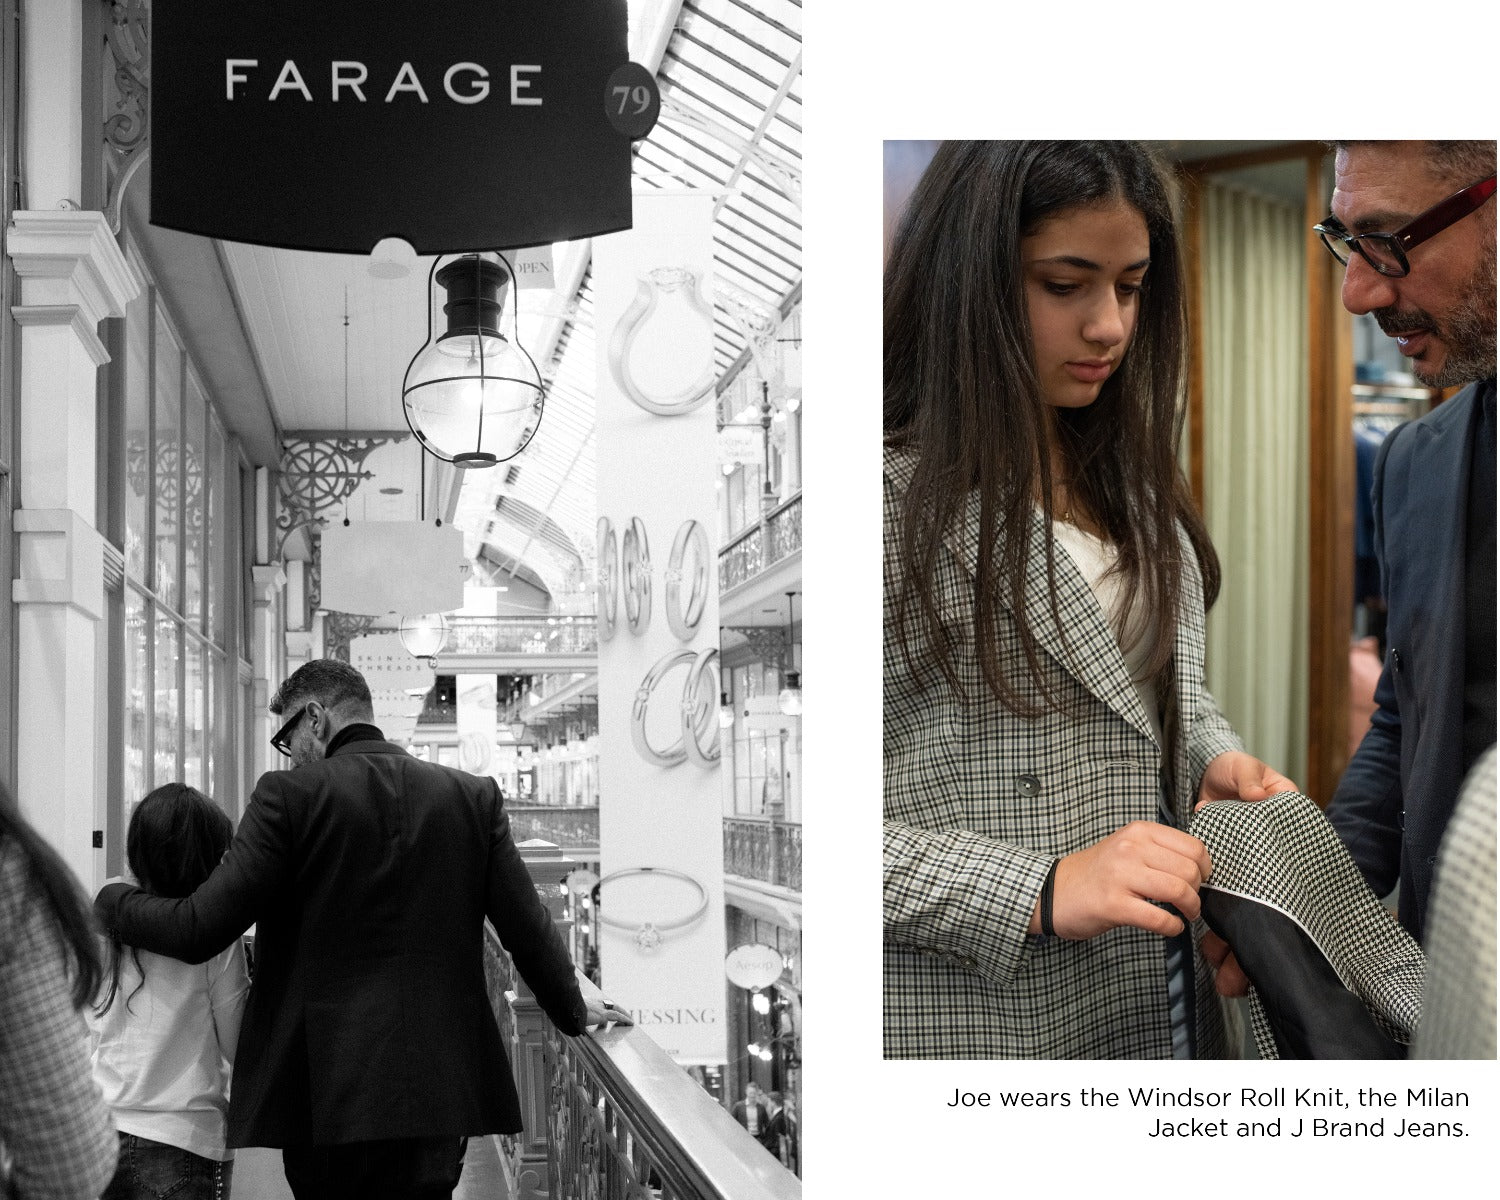 Joe Farage with his 3 daughters at the Strand Arcade